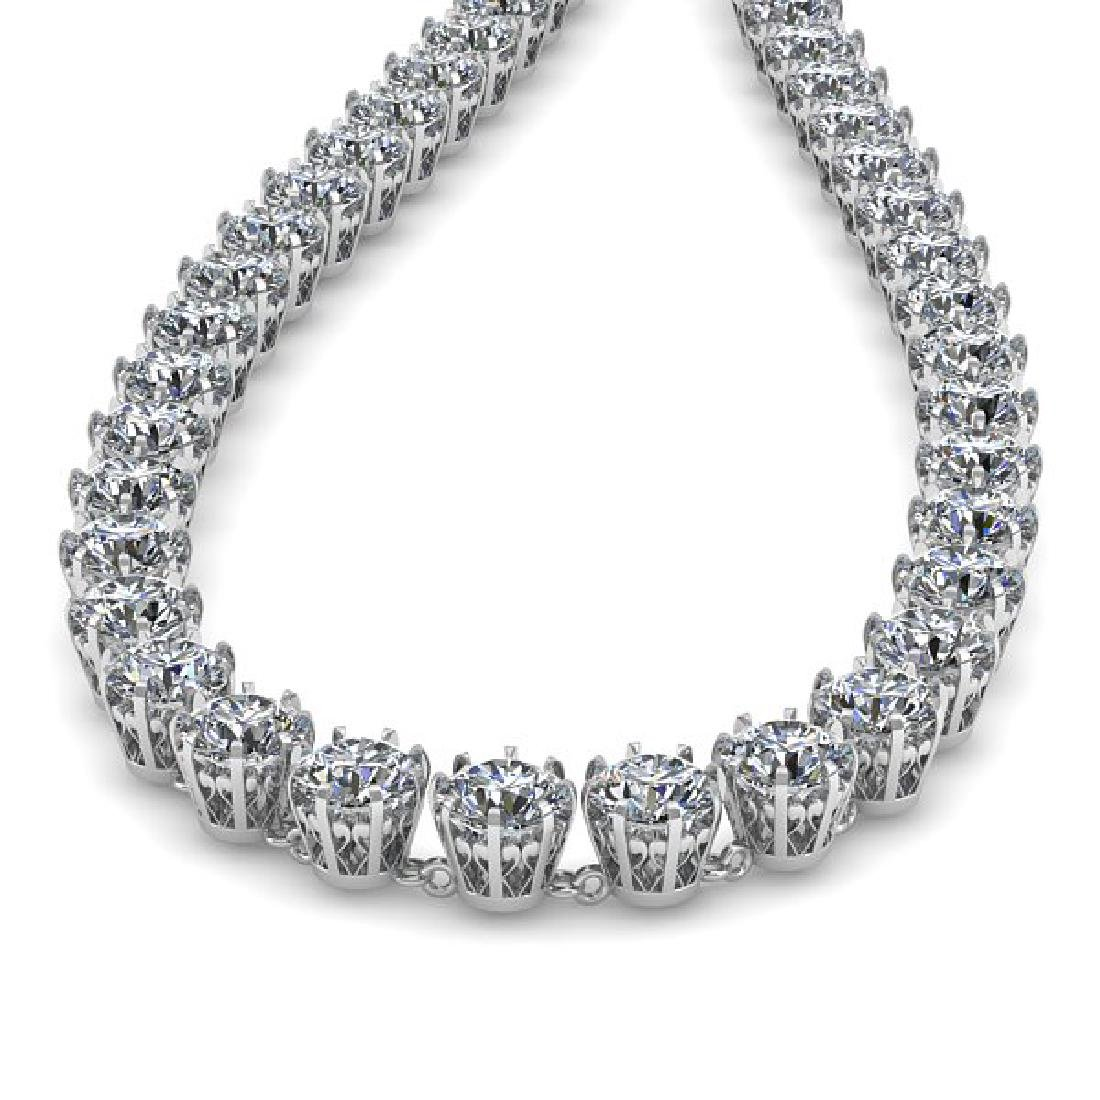 34 CTW SI Certified Diamond Necklace 14K White Gold - 2